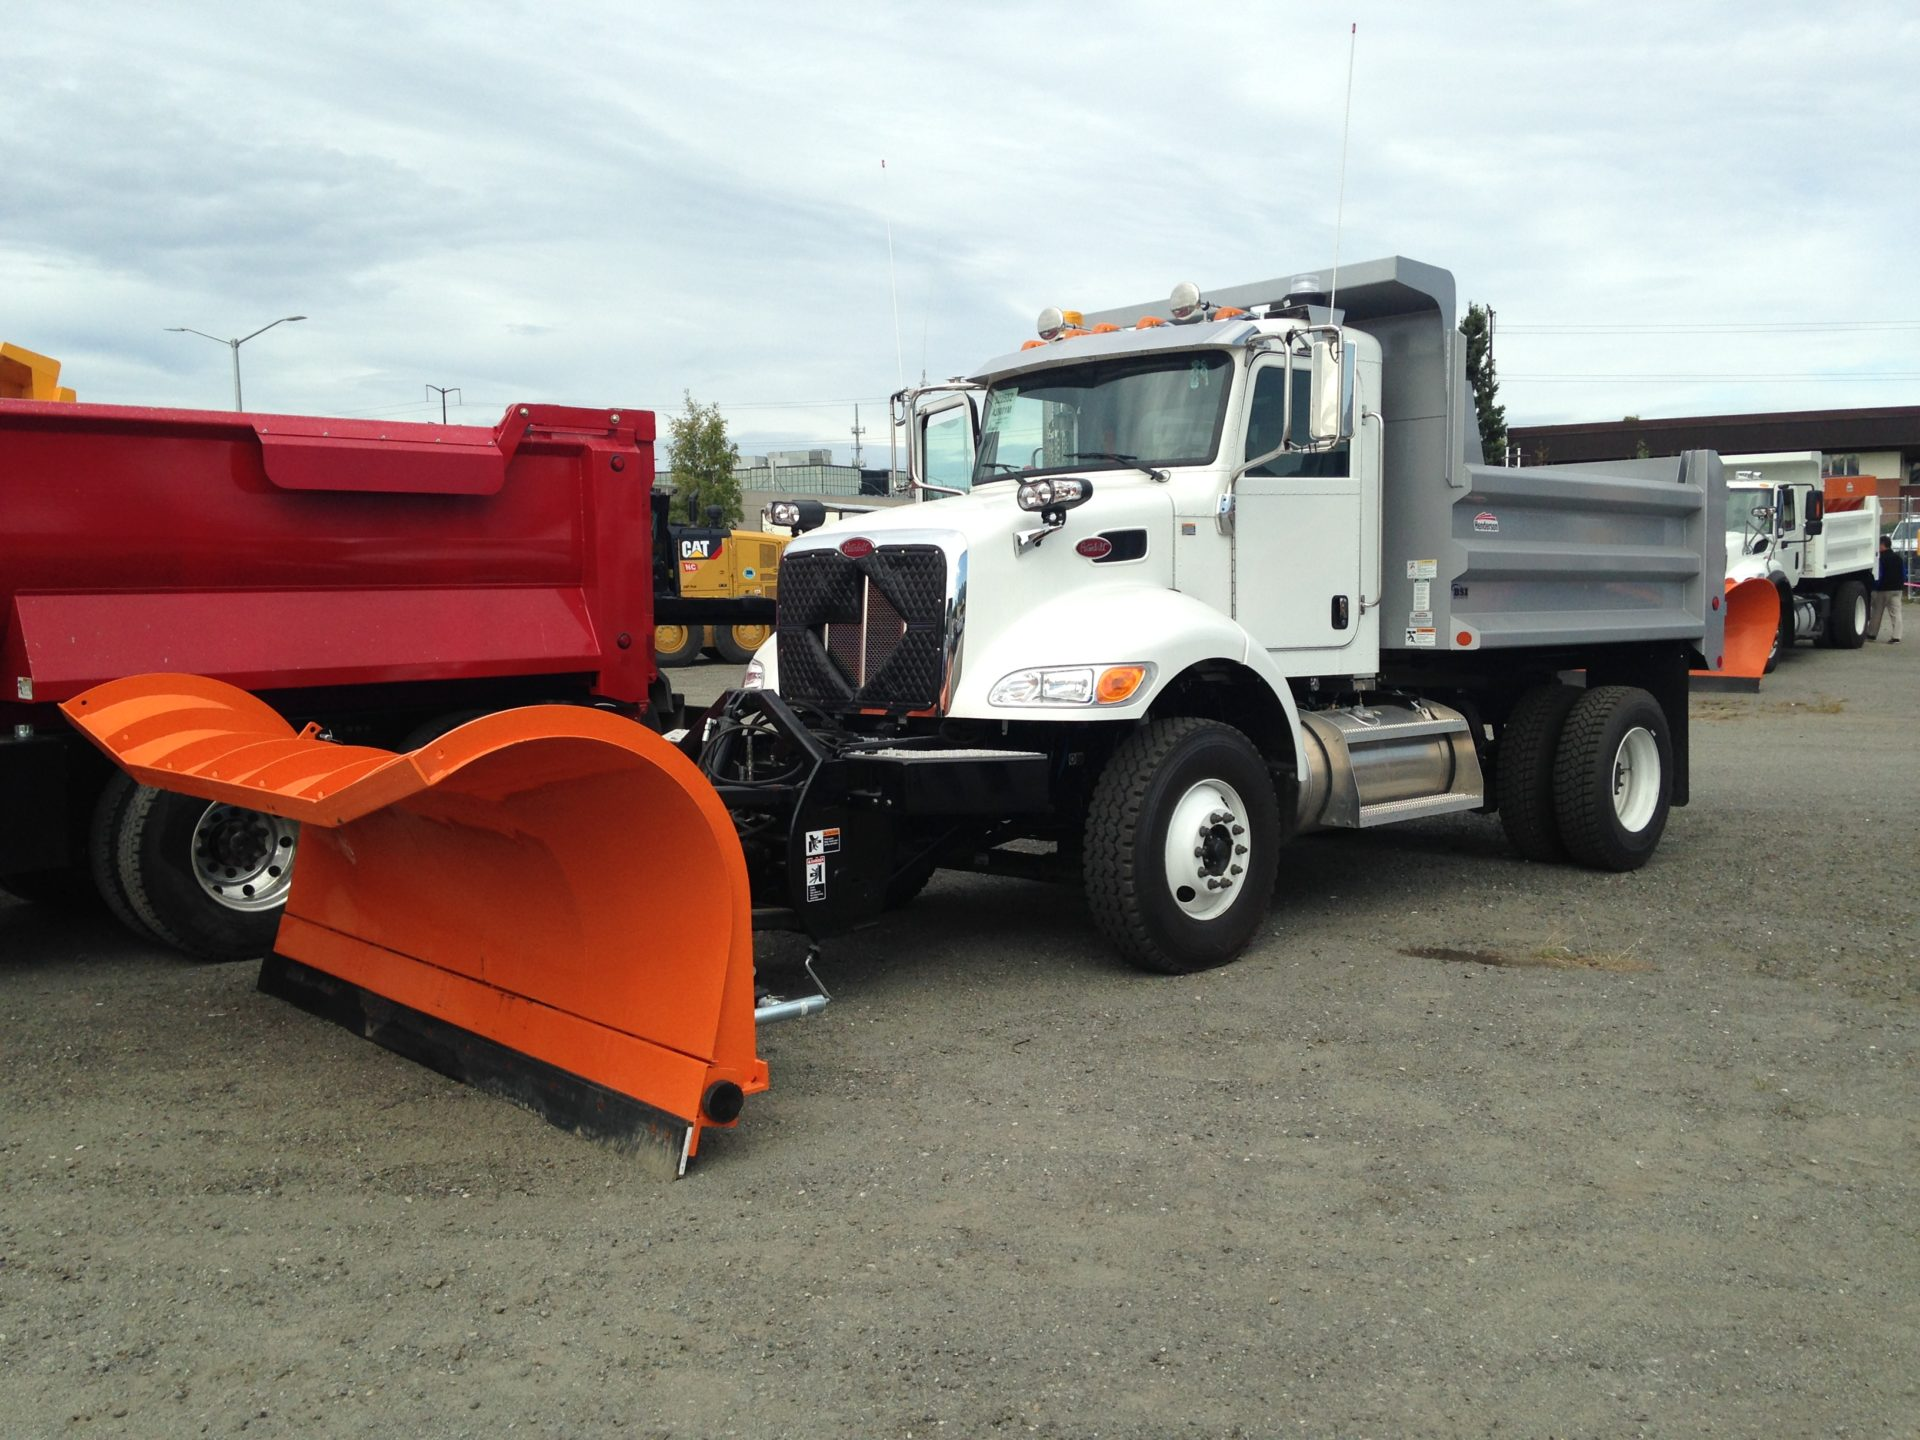 Truck with a snow plow attachment on the front.